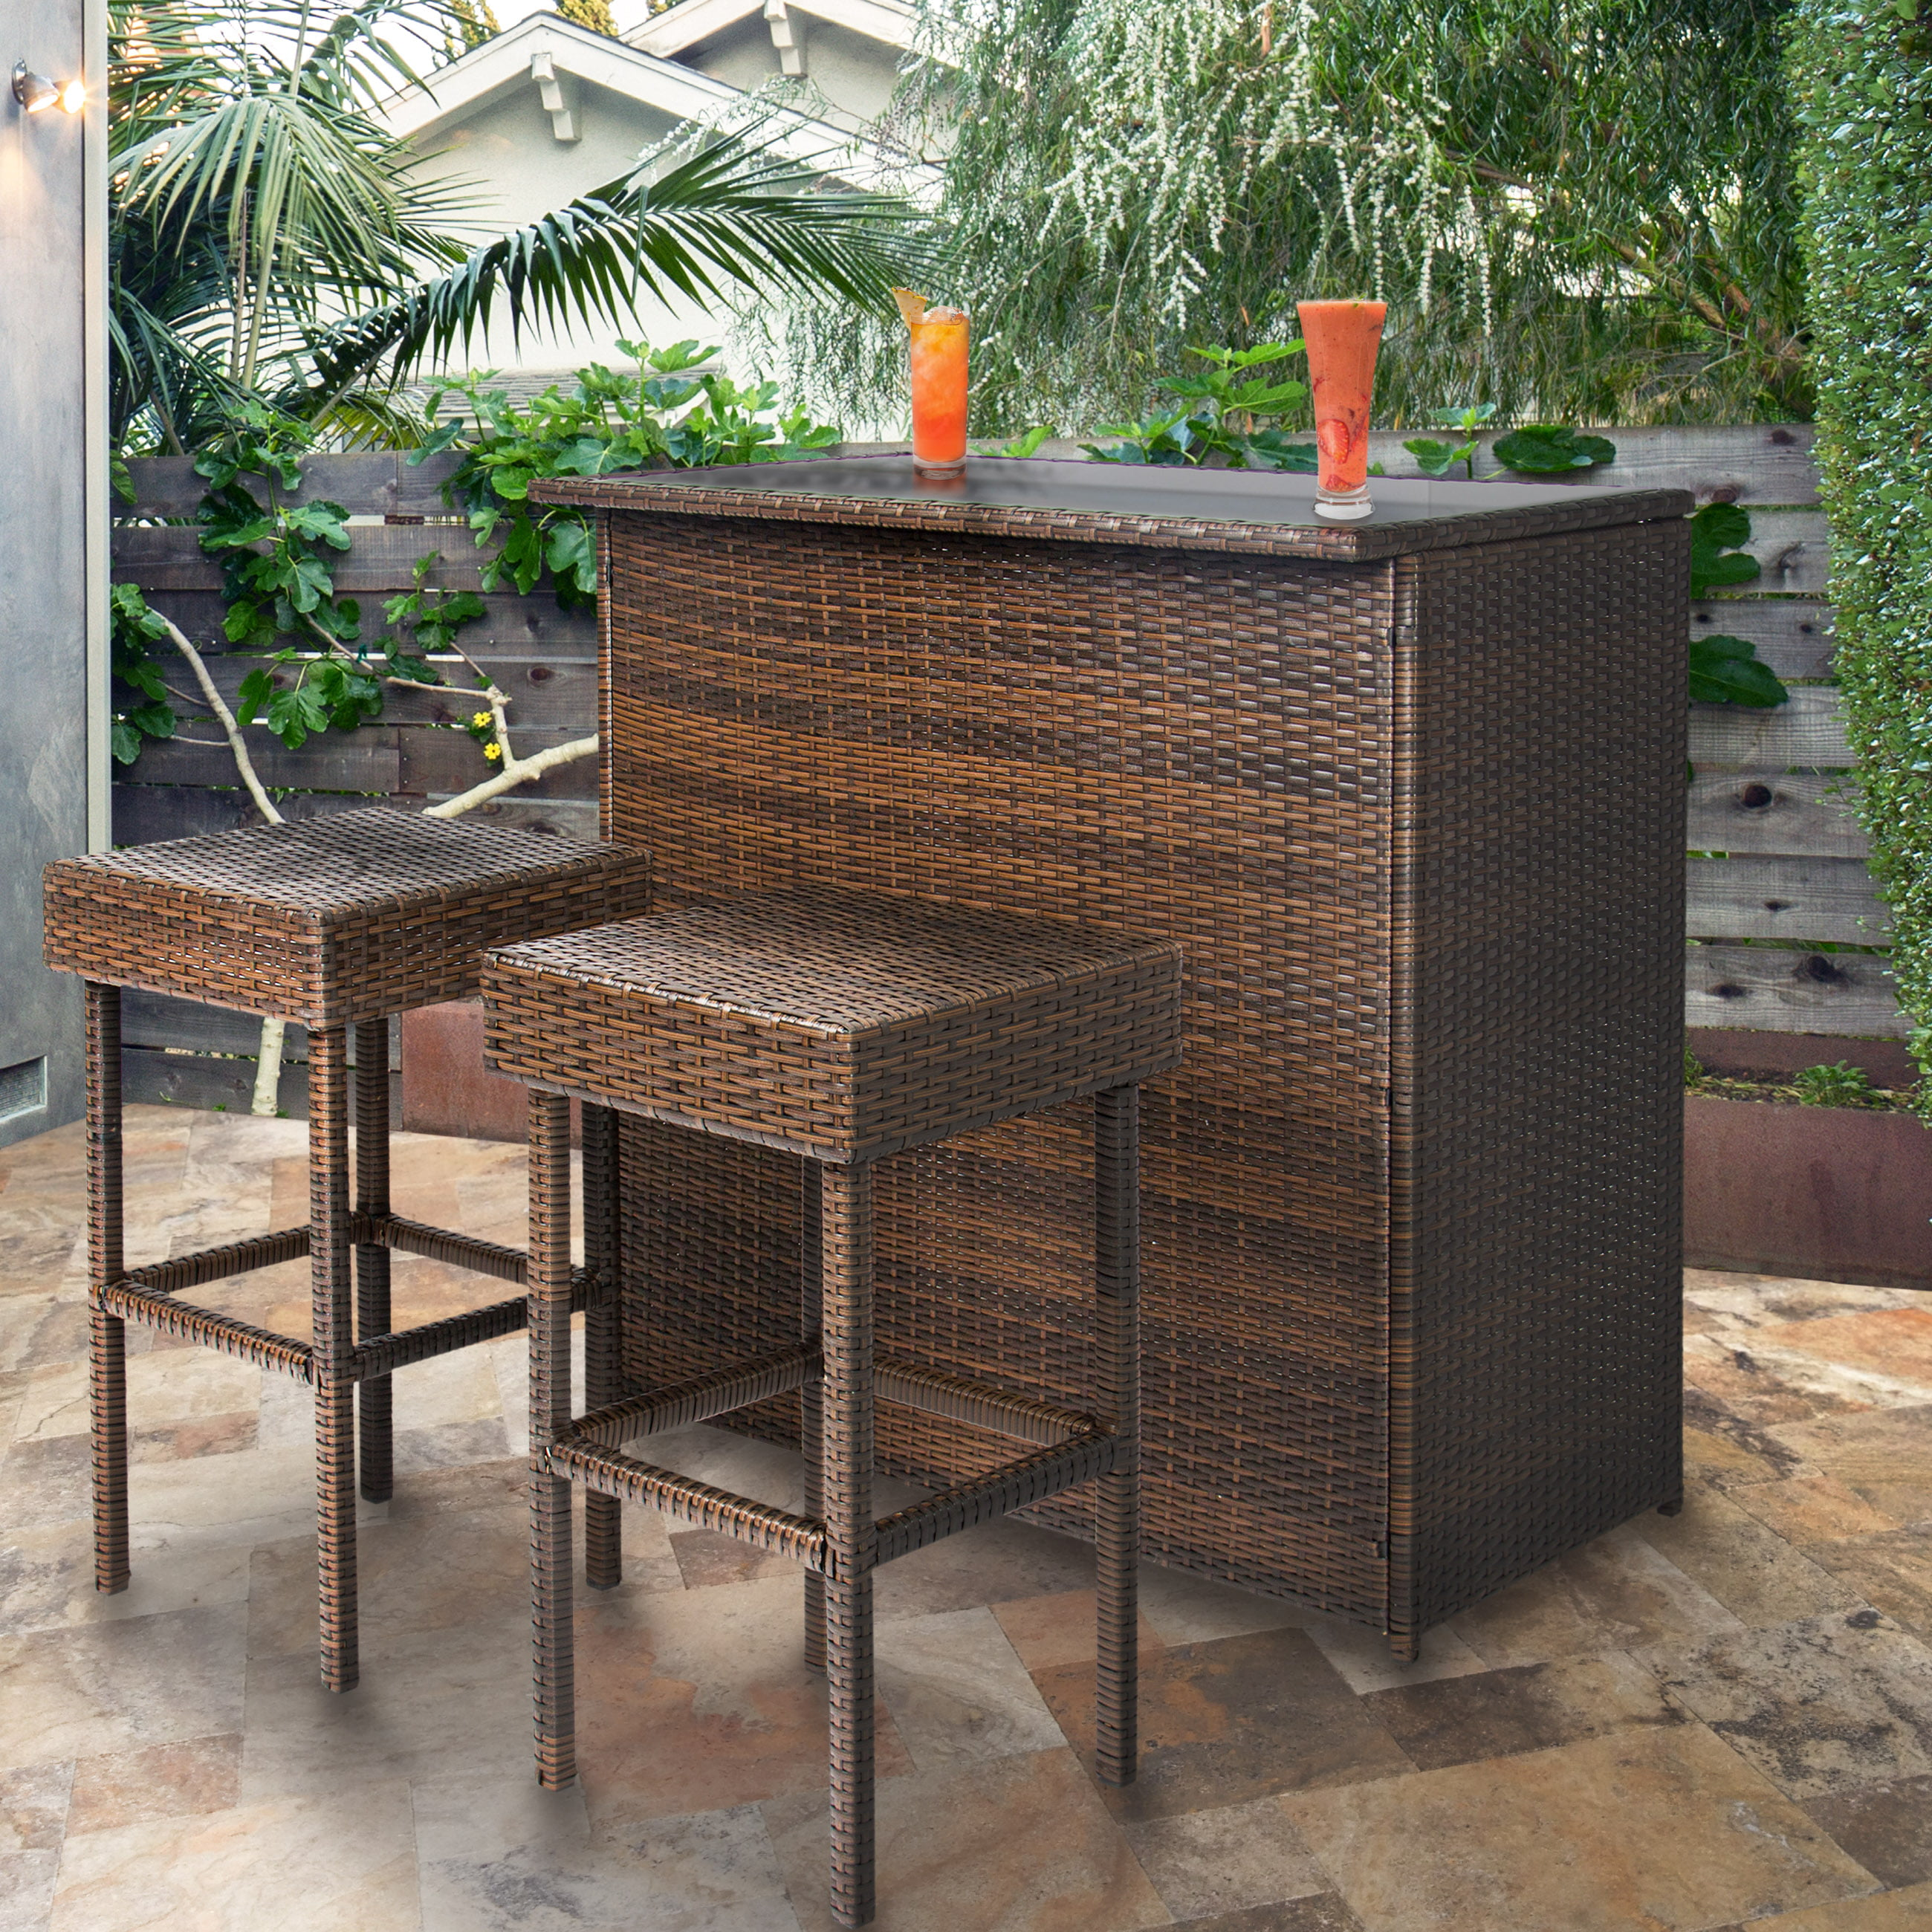 3PC Wicker Bar Set Patio Outdoor Backyard Table U0026 2 Stools Rattan Garden  Furniture Part 71